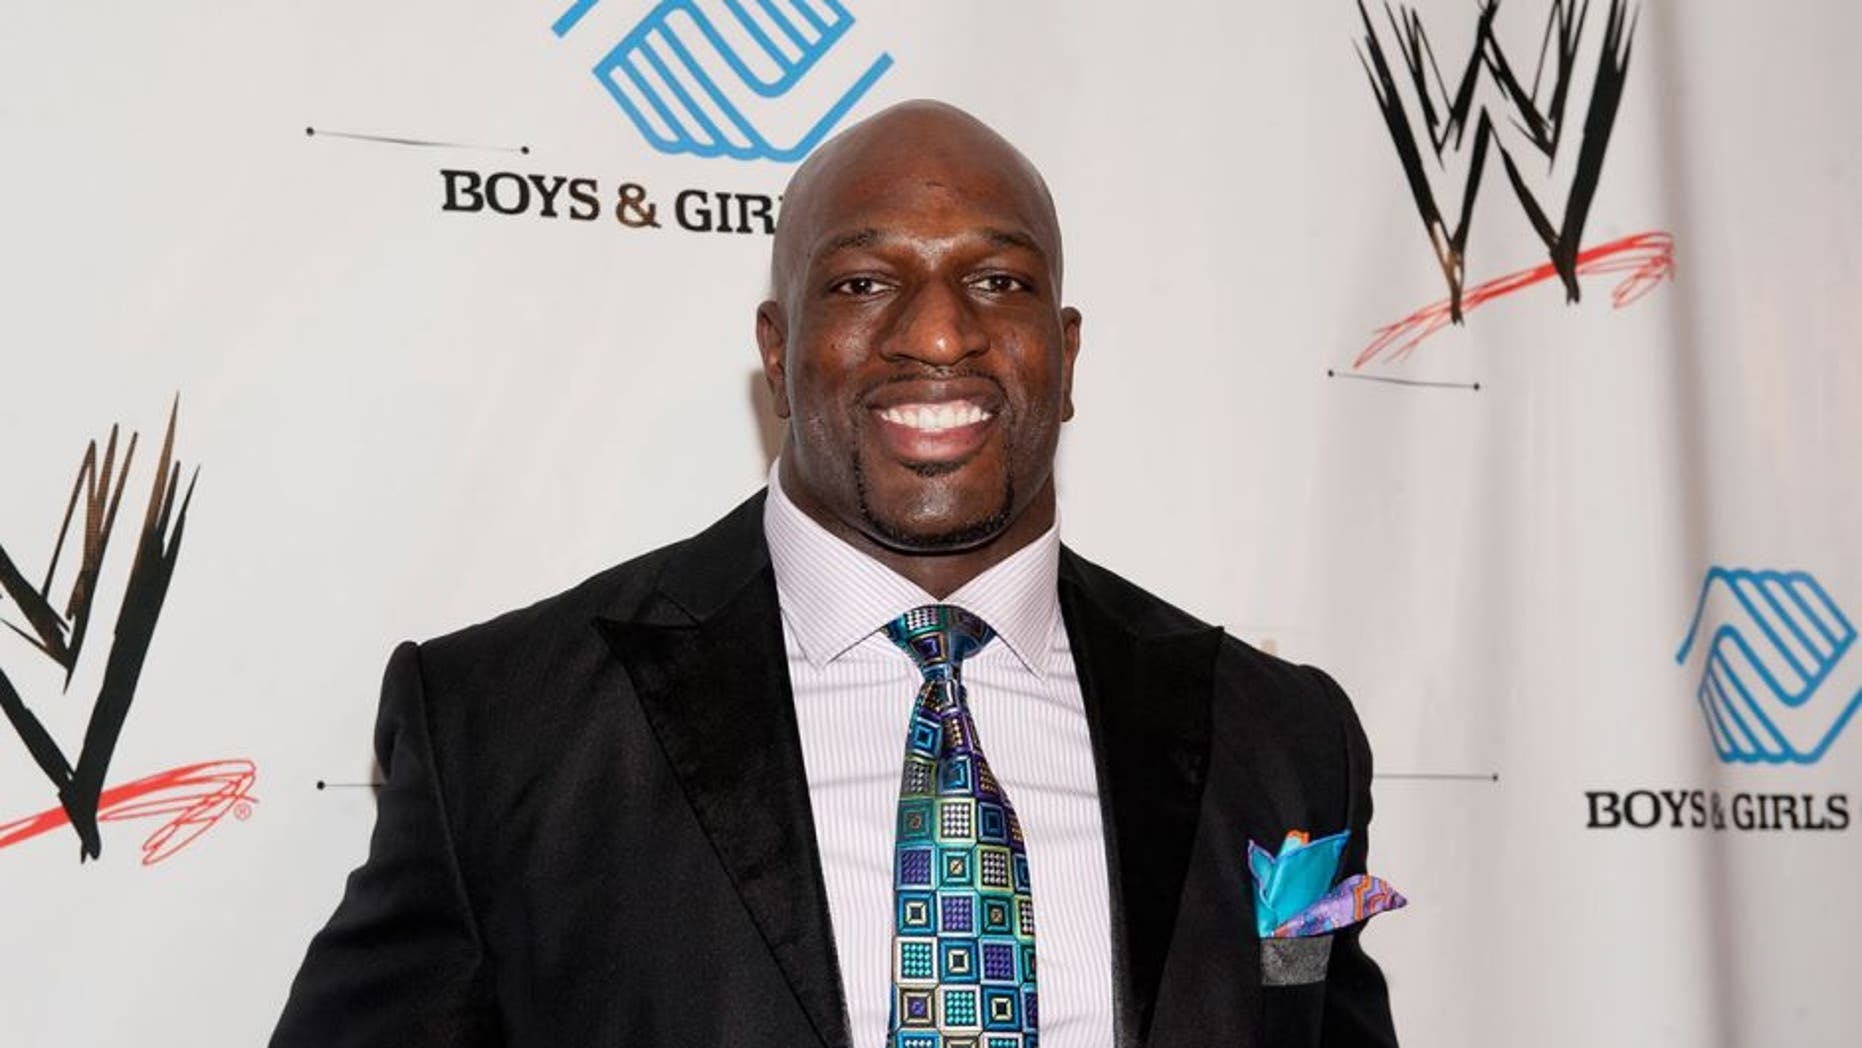 NEW ORLEANS, LA - APRIL 03: Titus O'Neil attends WWE's 2014 SuperStars For Kids at the New Orleans Museum of Art on April 3, 2014 in New Orleans City. (Photo by Erika Goldring/Getty Images)